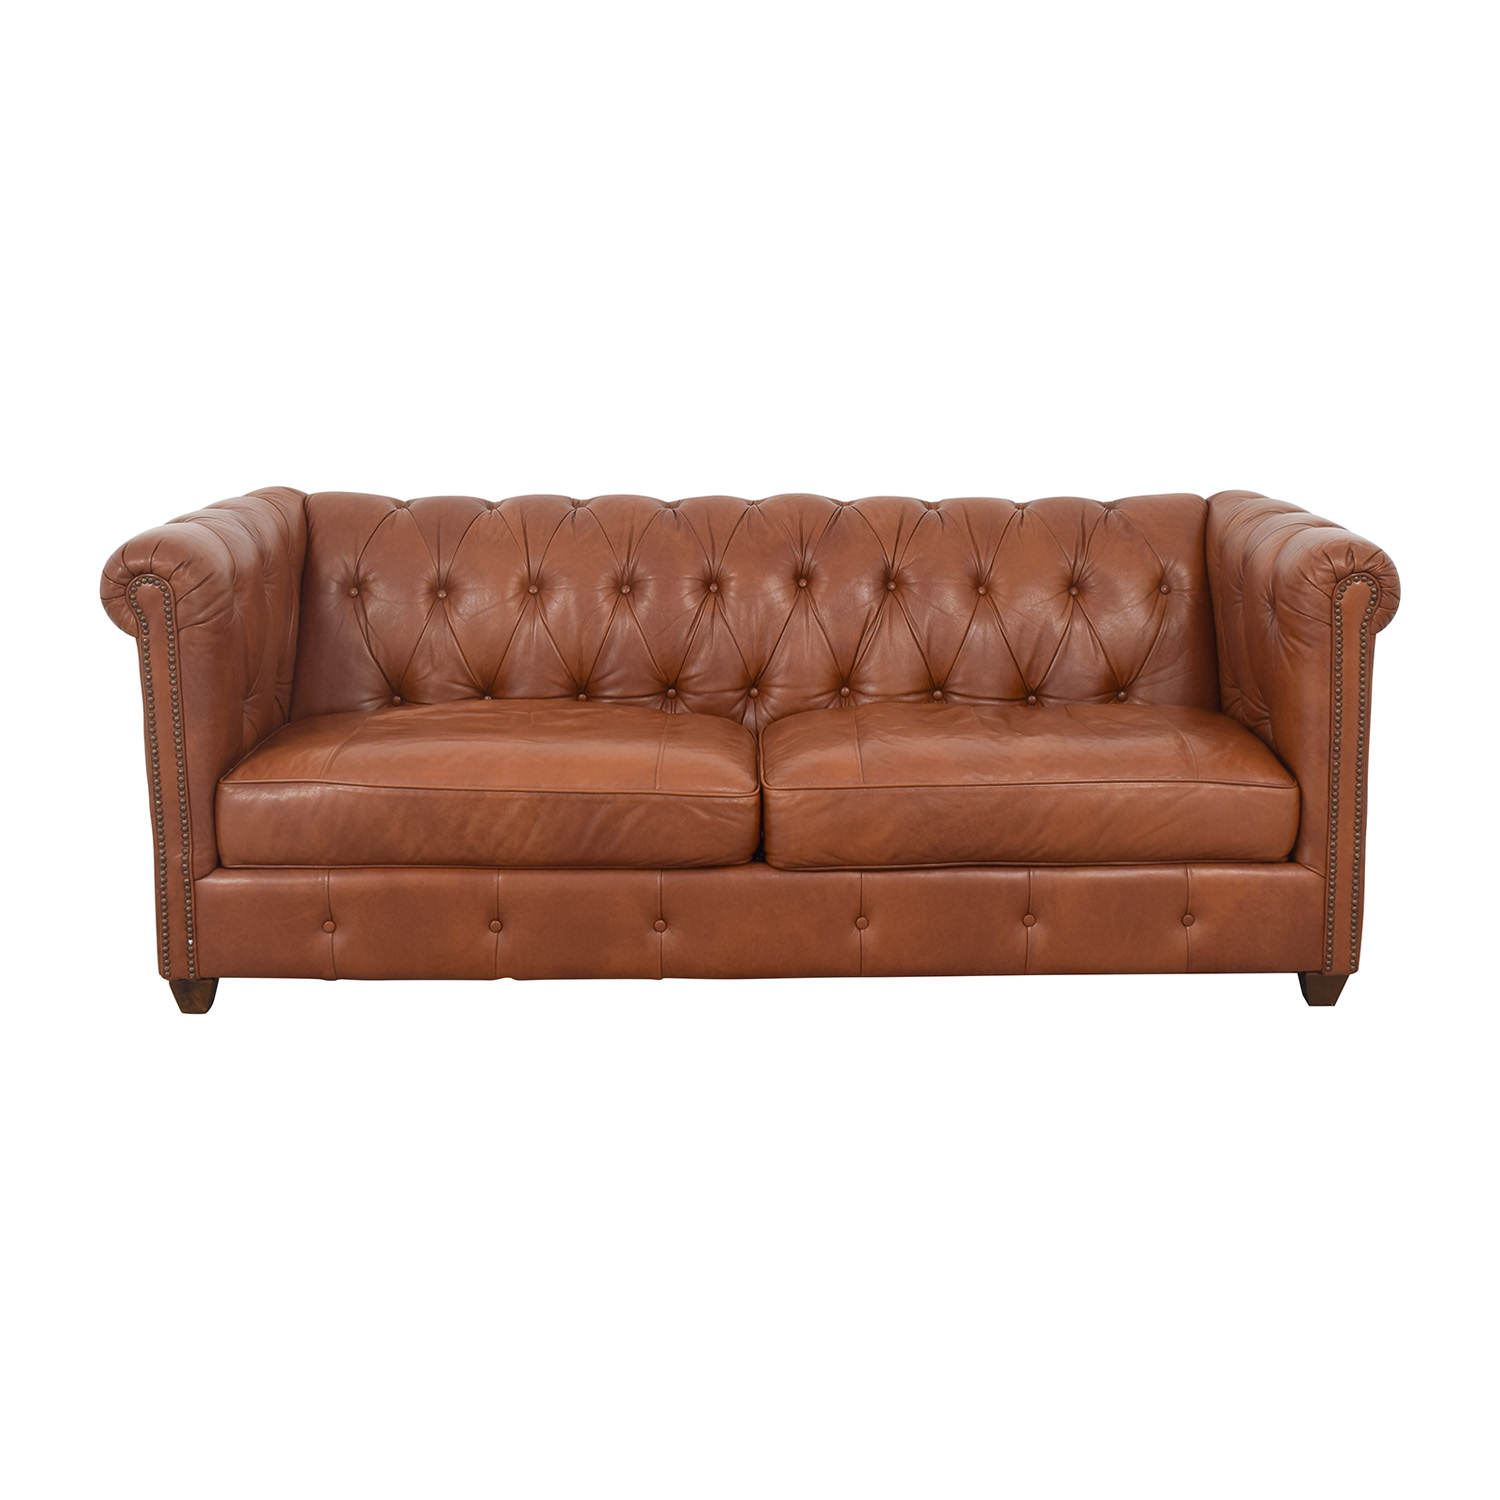 Birch Lane Birch Lane Branchville Chesterfield Sofa discount